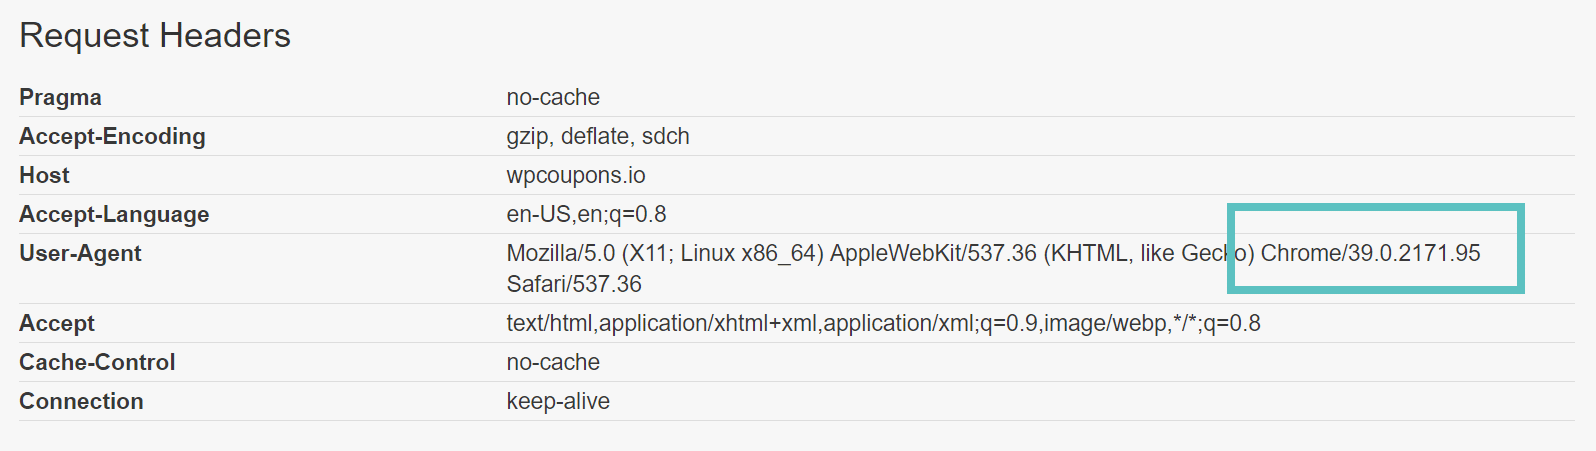 pingdom user-agent